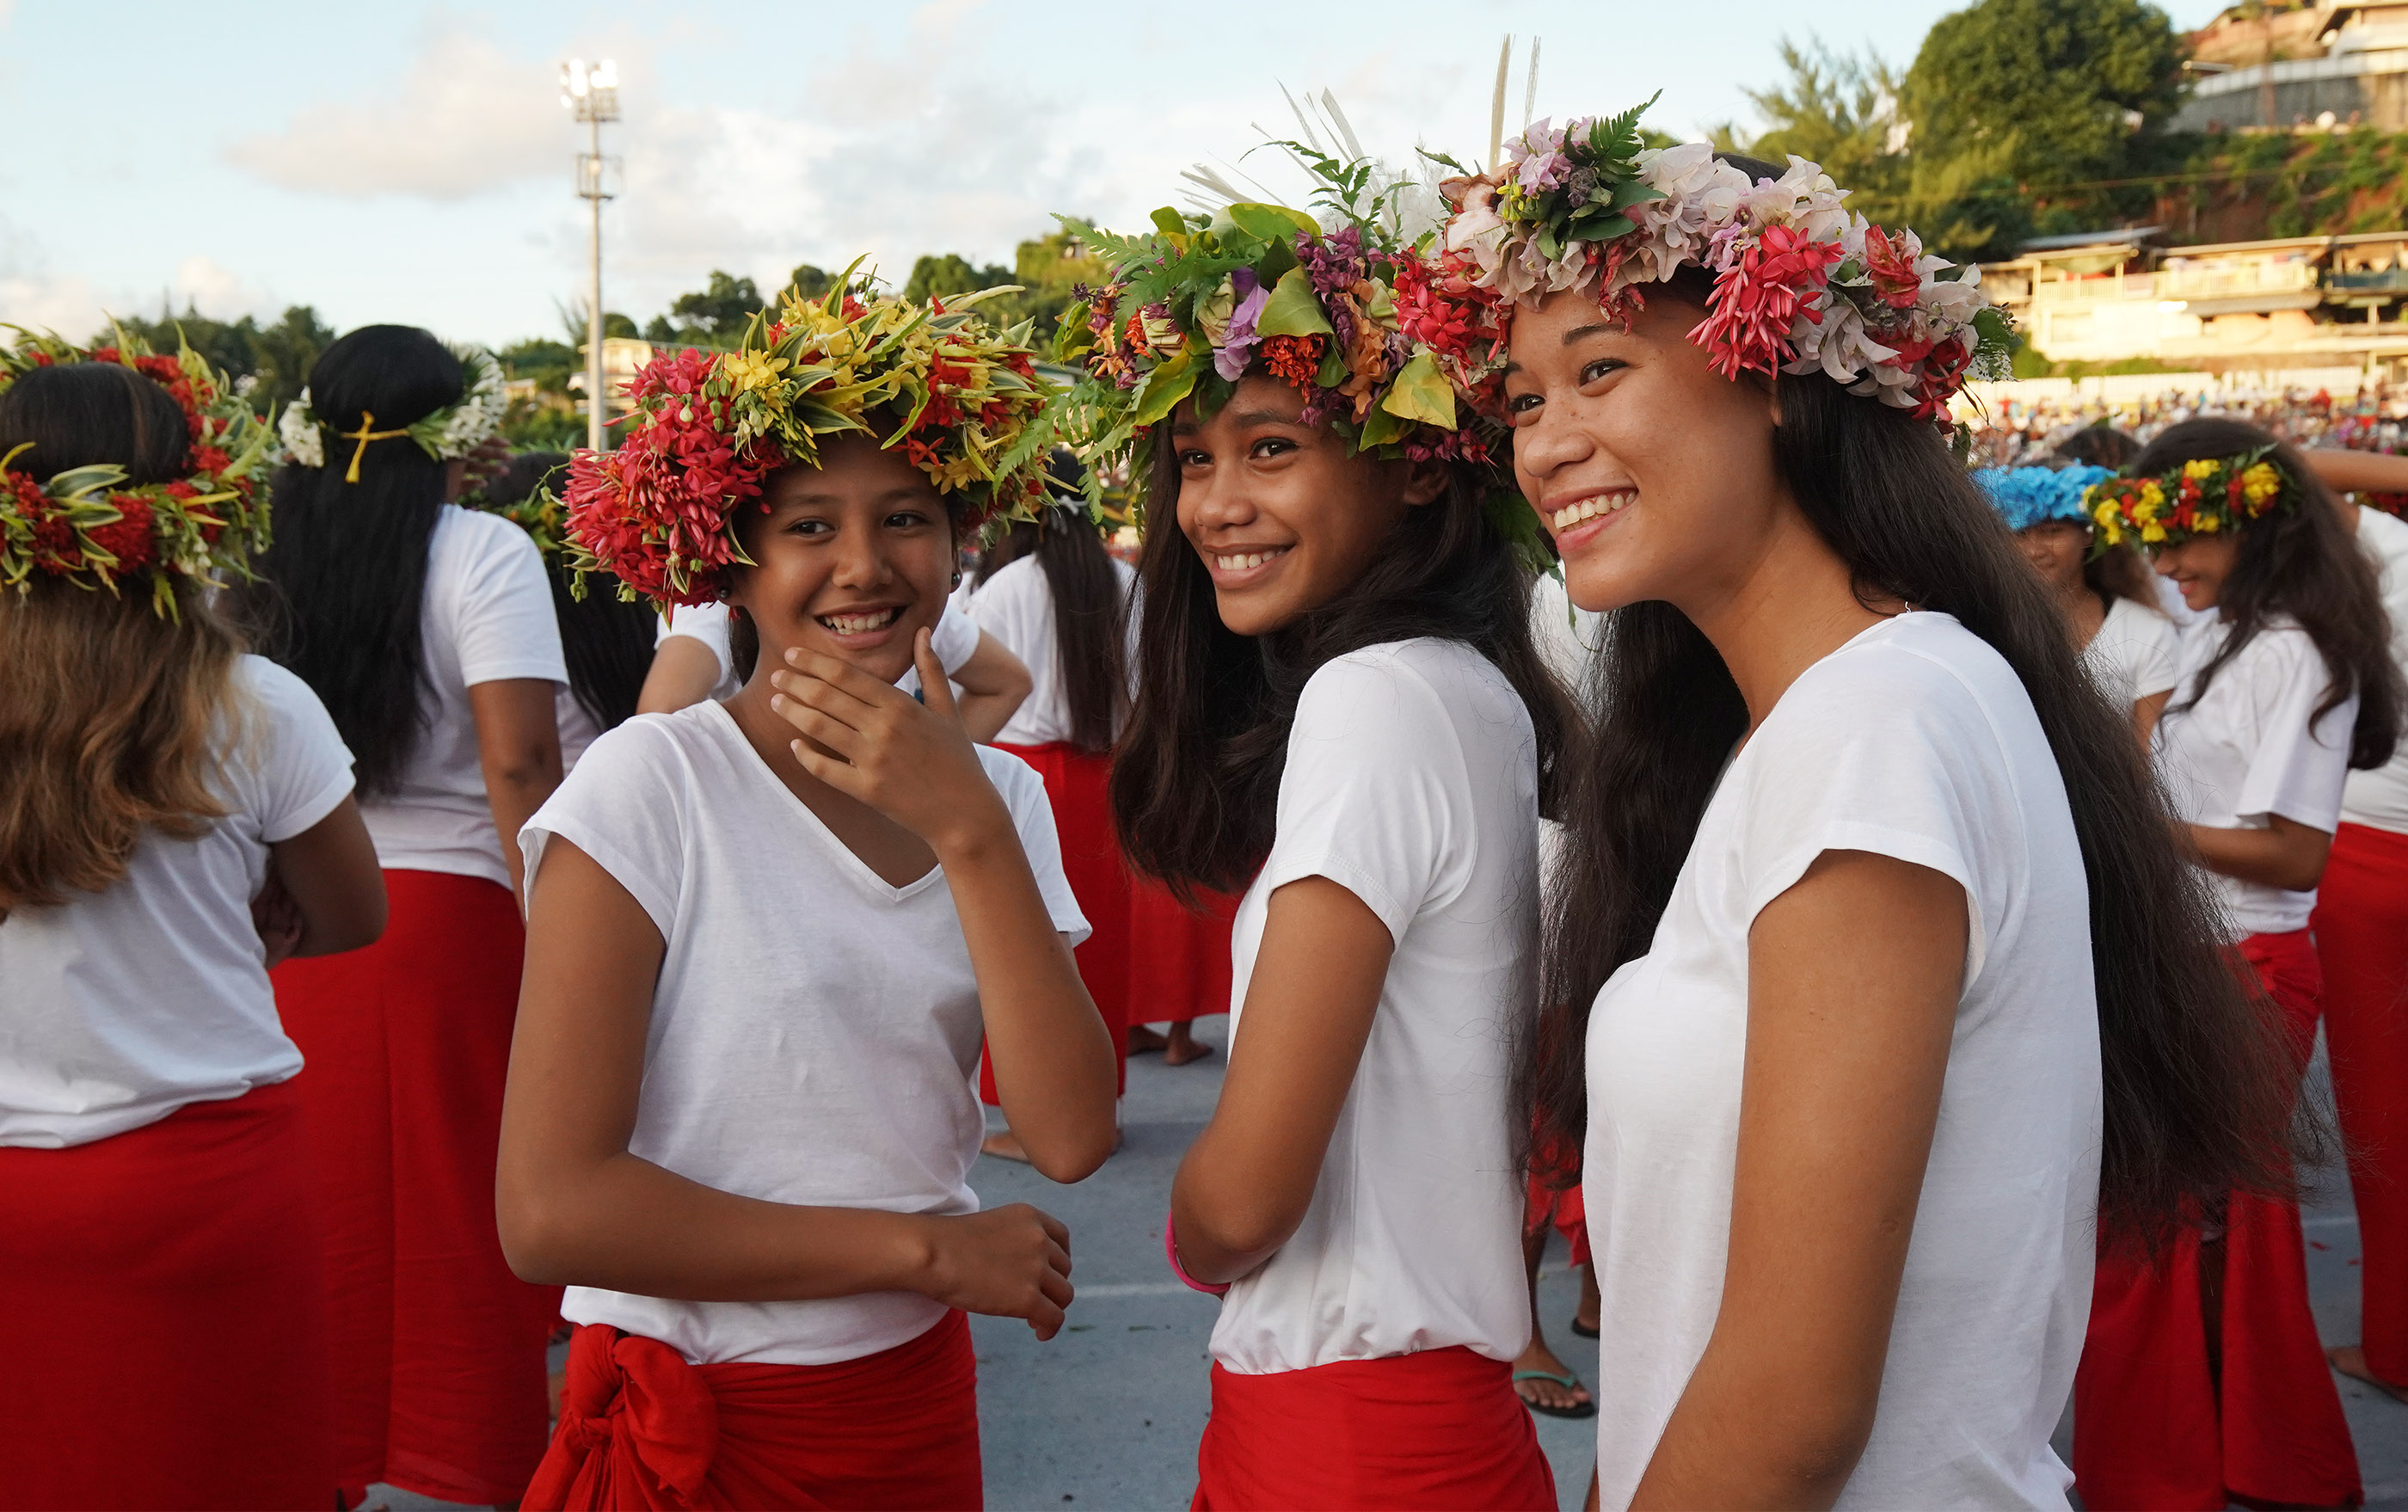 Performers wait to entertain during a Tahiti cultural program in Papeete, Tahiti, on May 24, 2019.